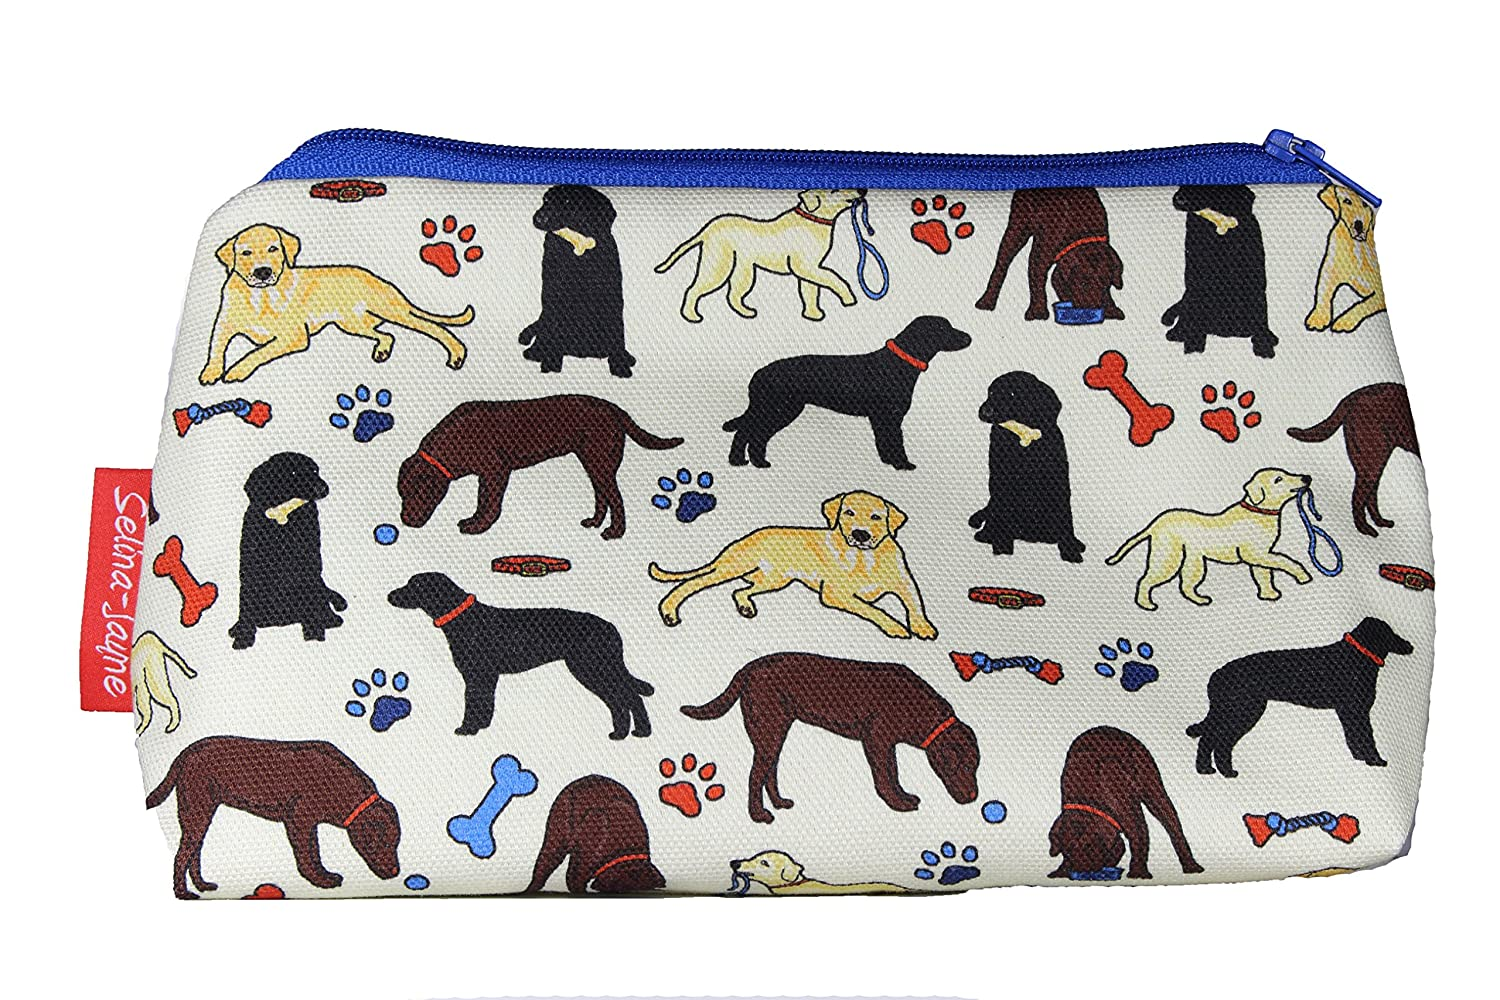 Selina-Jayne Labrador Dogs Limited Edition Designer Toiletry Bag